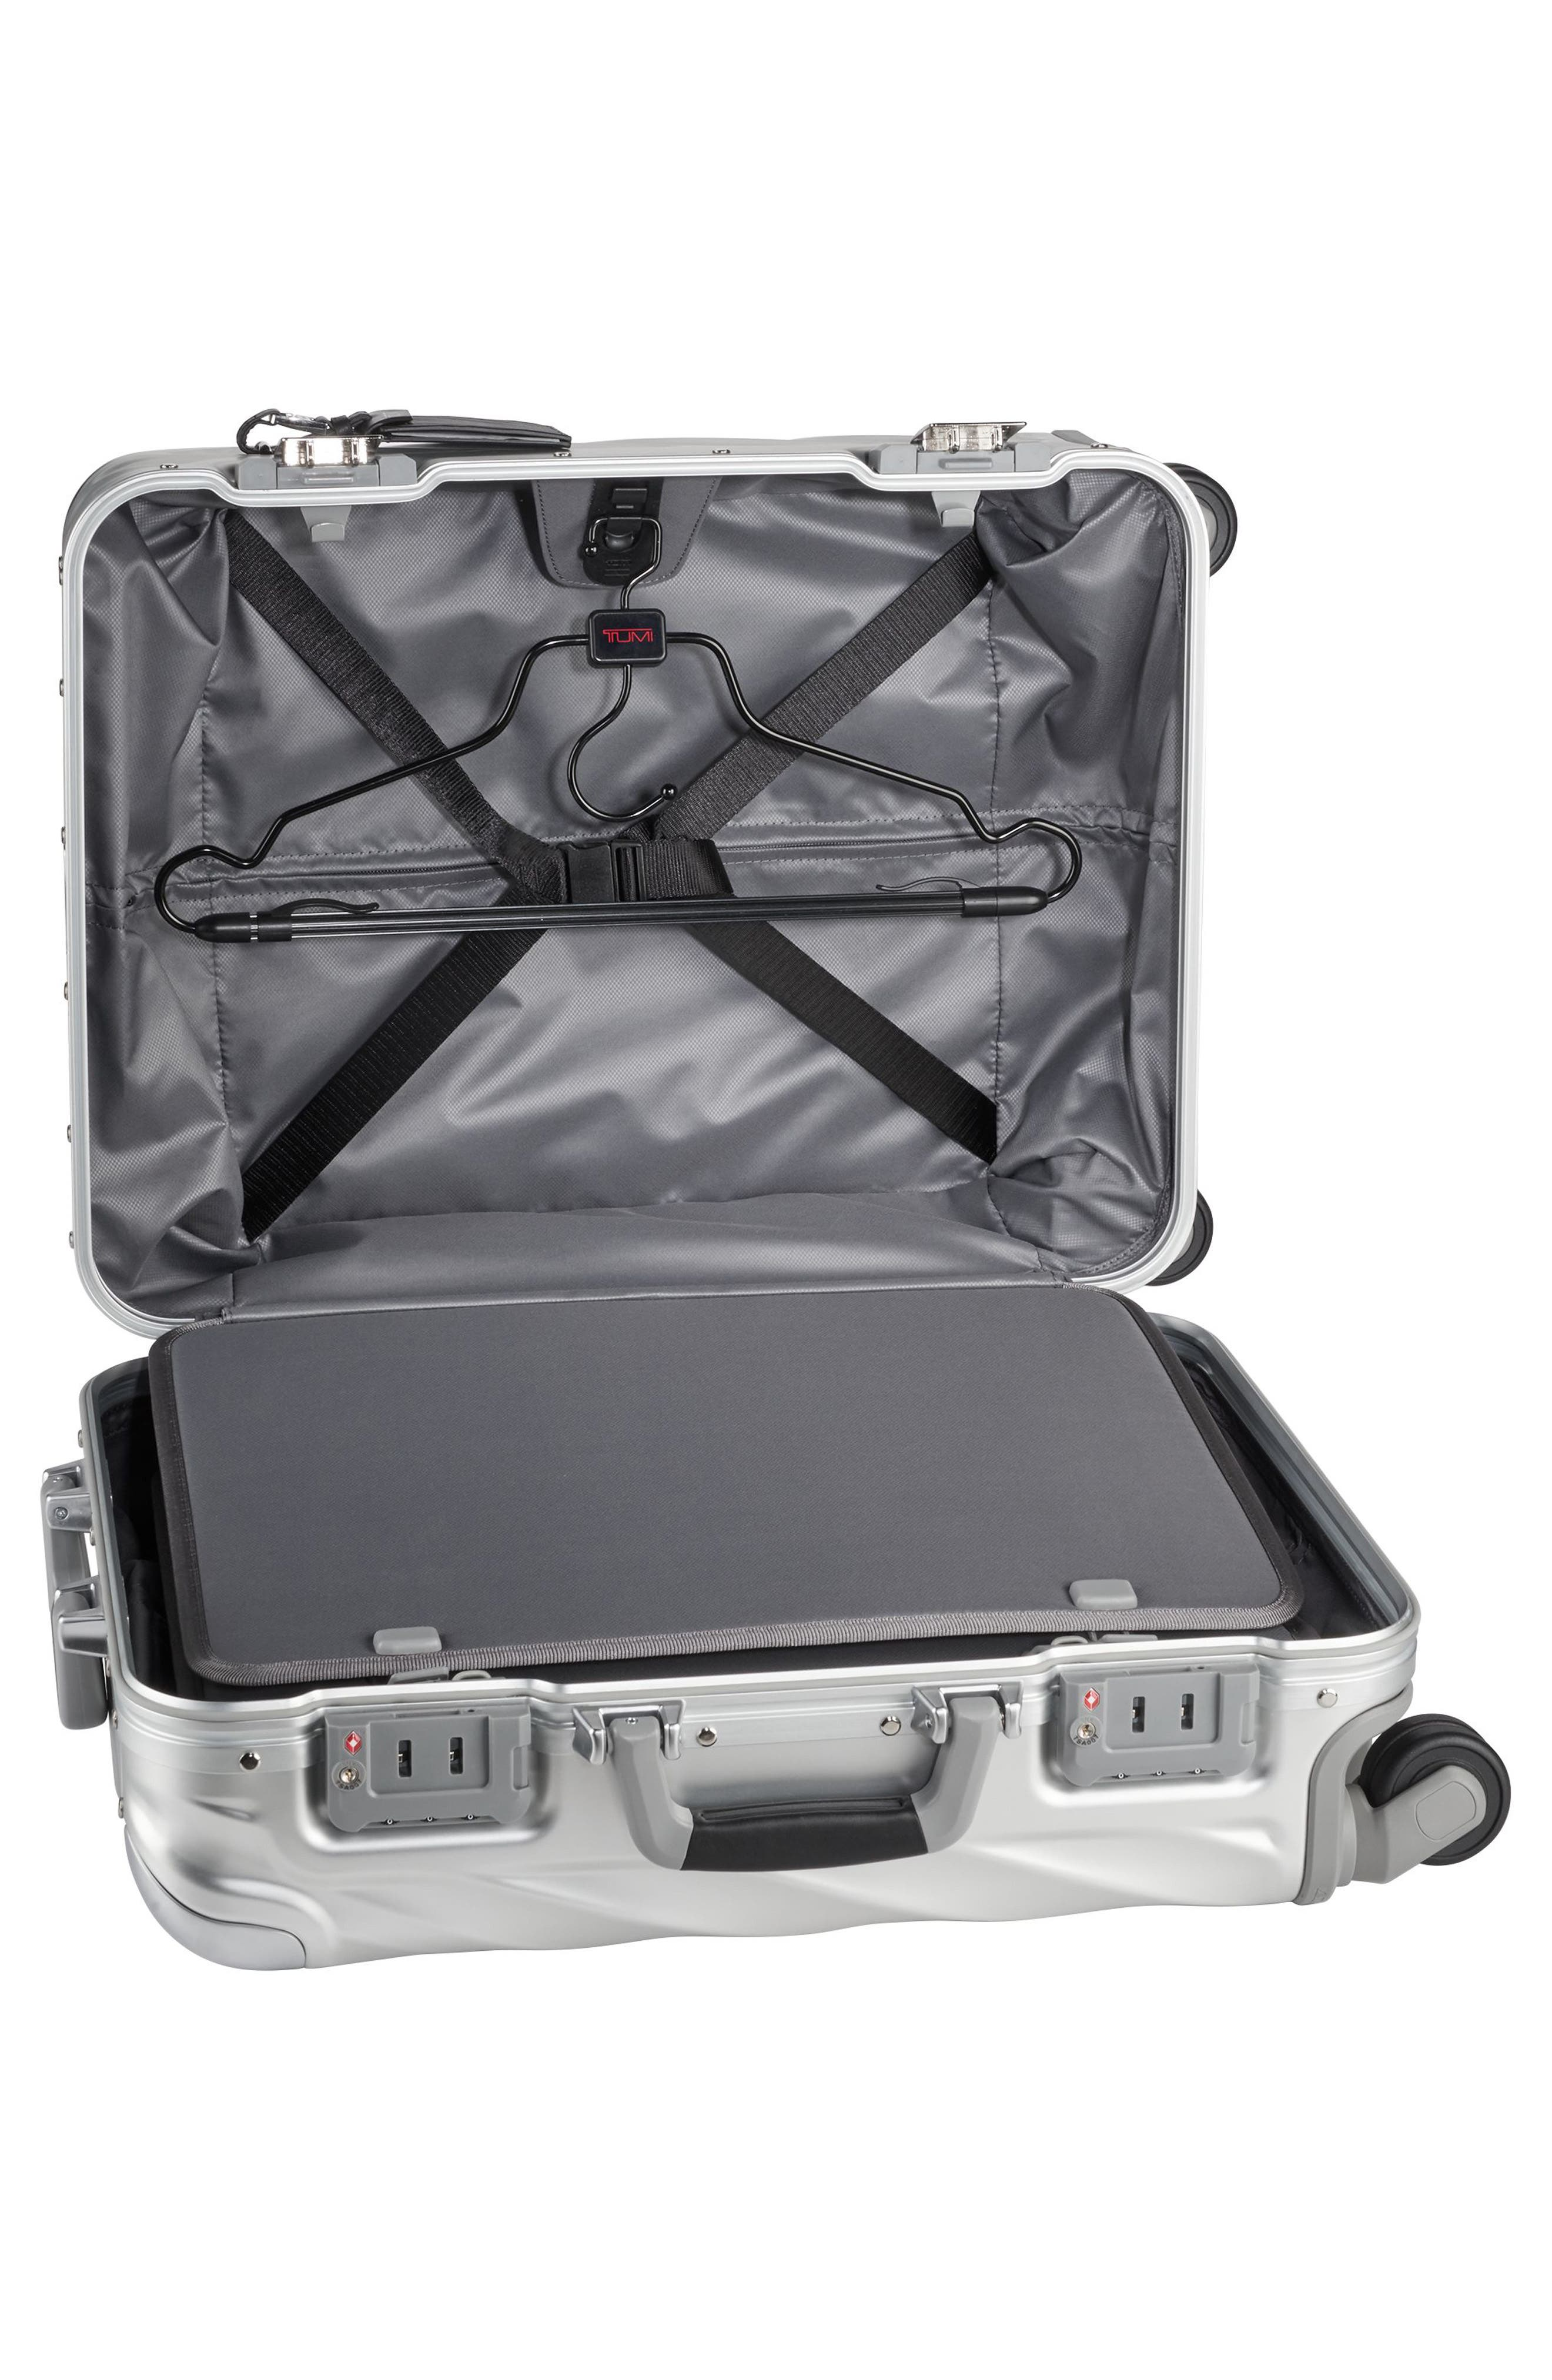 19 Degree 22-Inch Continental Wheeled Aluminum Carry-On,                             Alternate thumbnail 2, color,                             SILVER